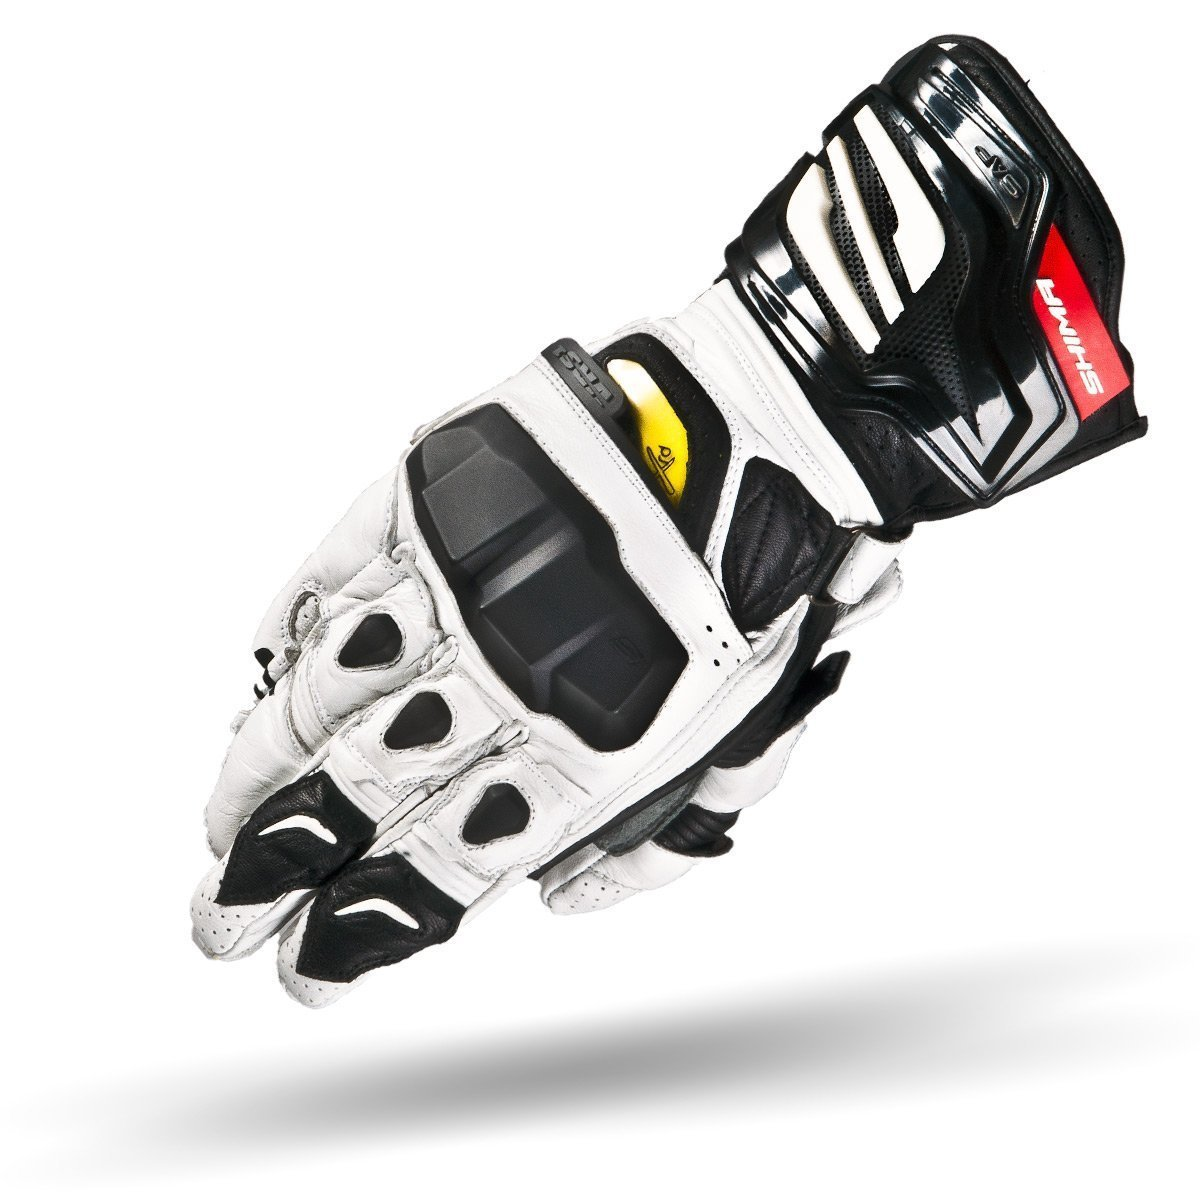 Shima VRS-1 WHITE, Summer KNOX Sport Protective Leather Comfort Motorbike Gloves (S-XXL), White, Size:S